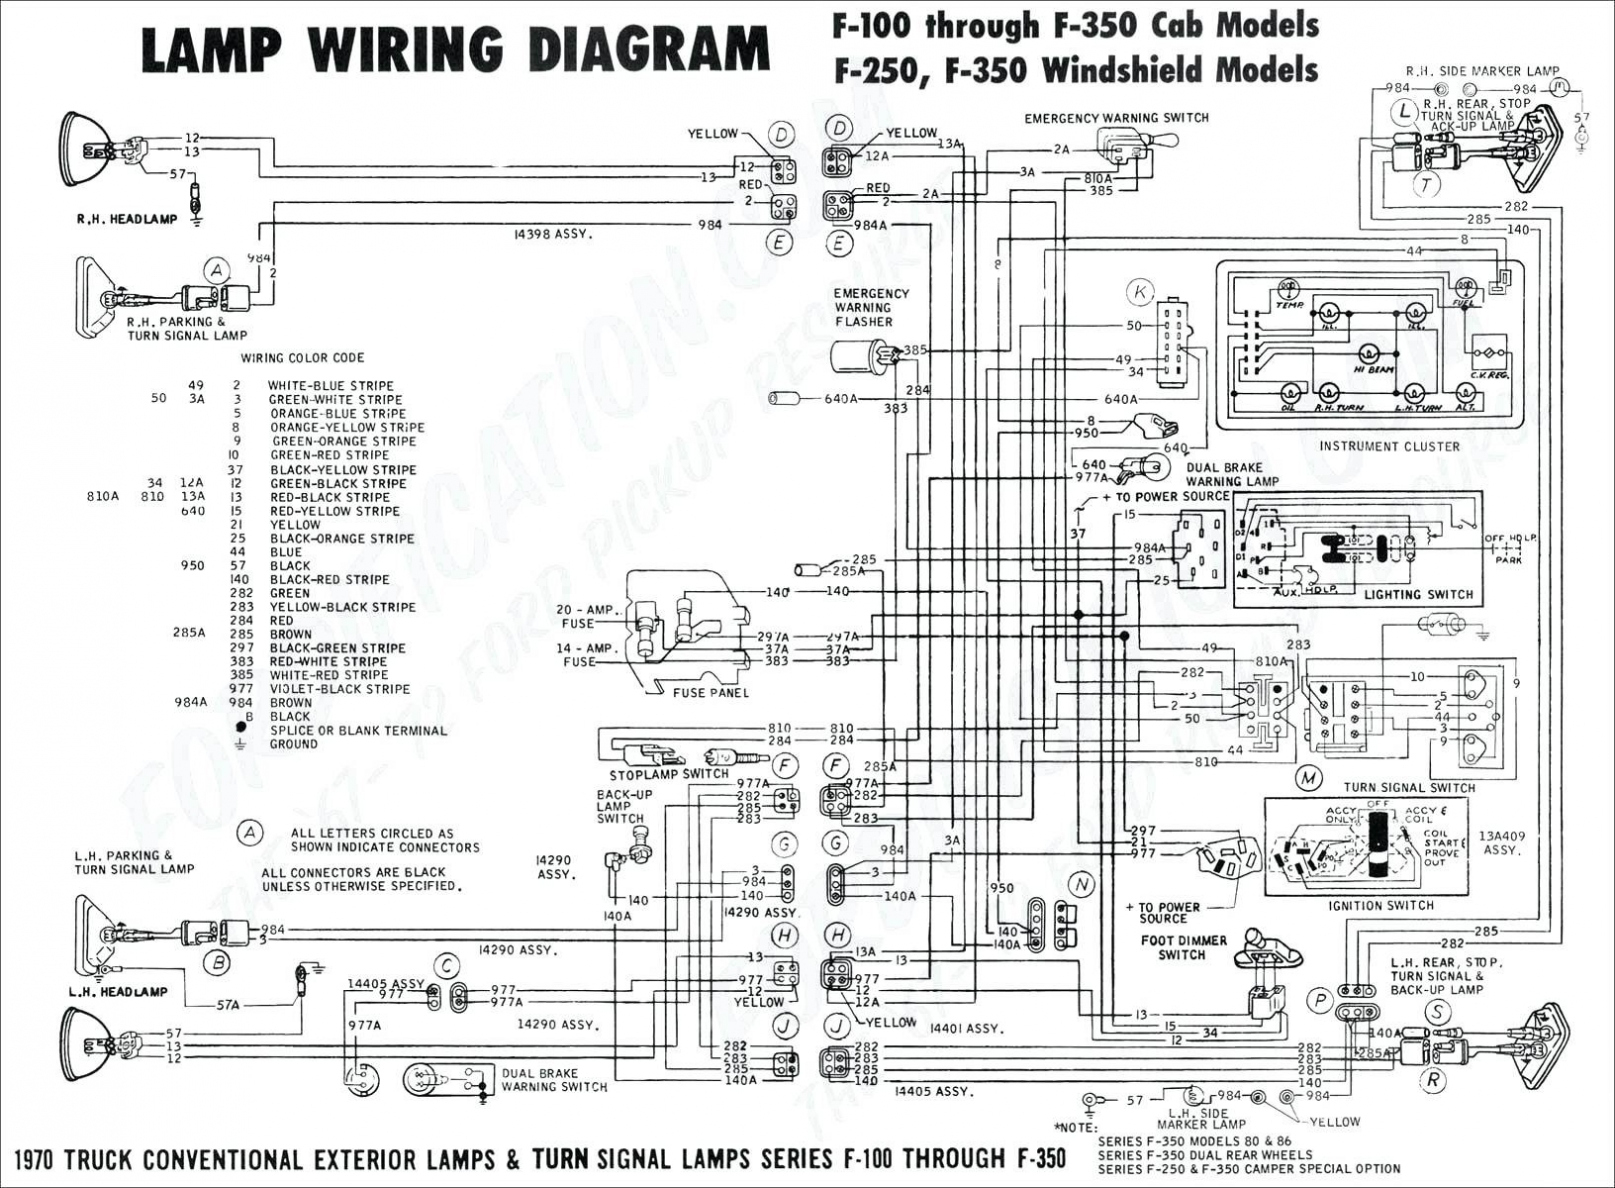 Ih Scout 2 Wiring Diagram | Wiring Schematic Diagram - 1 ... on